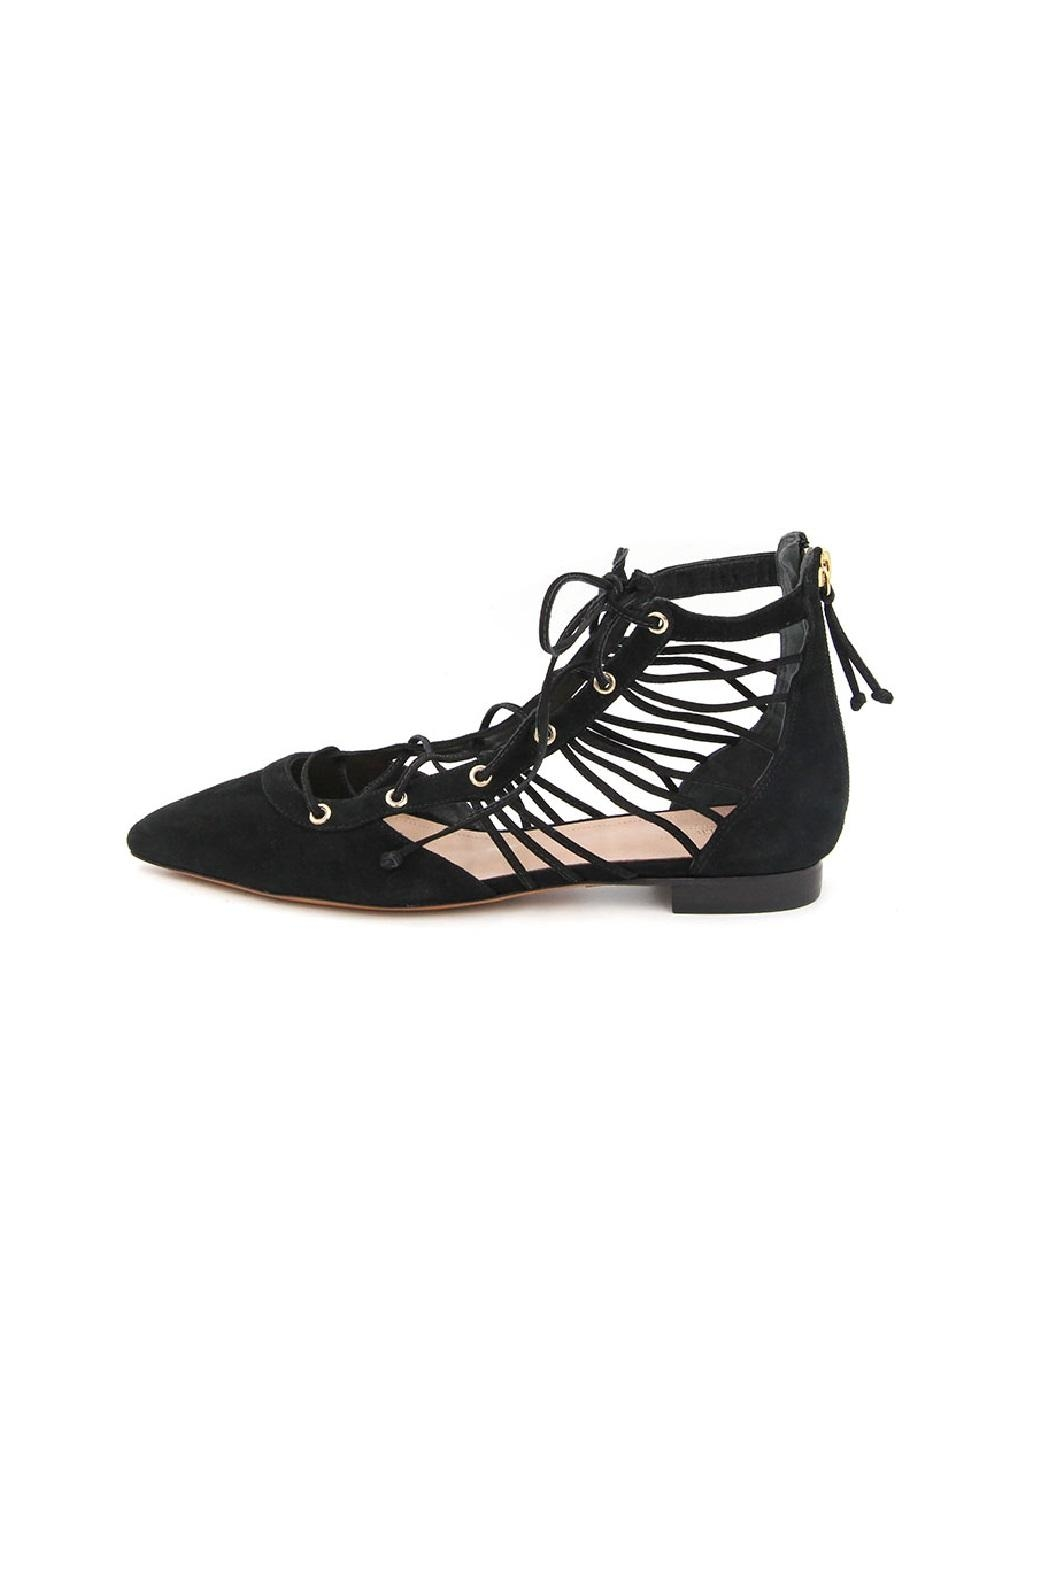 Rachel Zoe Renae Lace Up Flats - Main Image